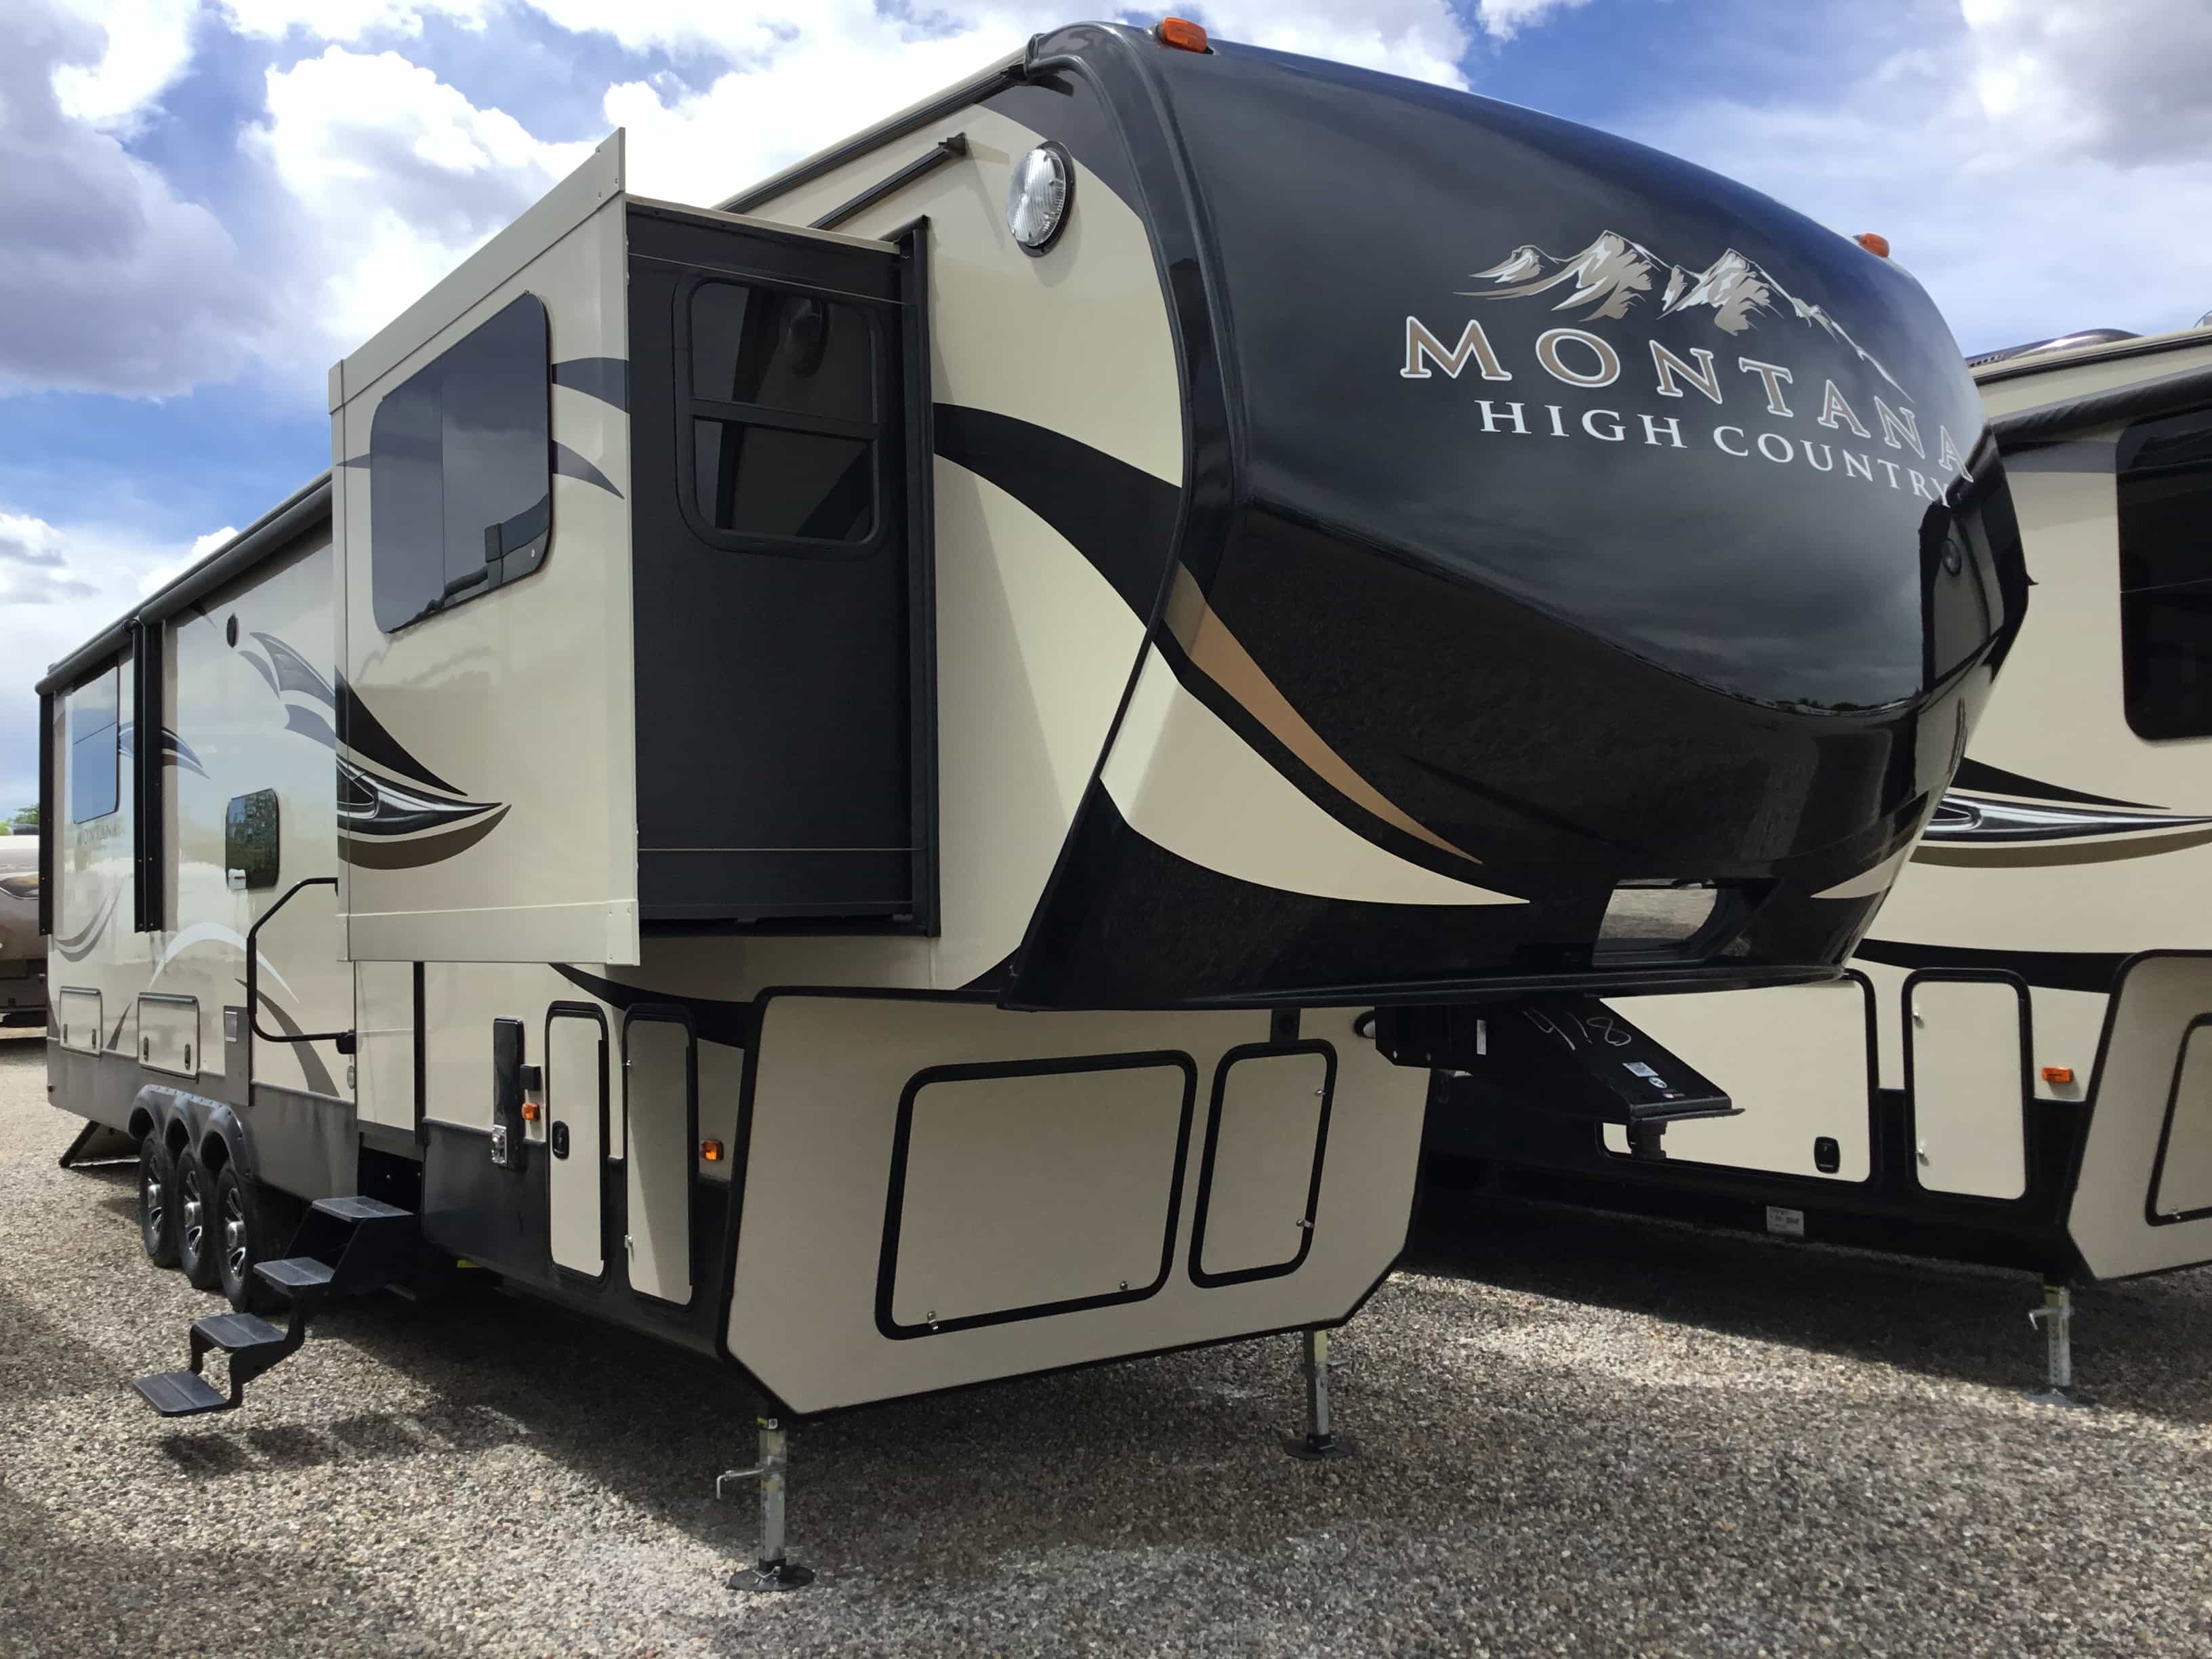 2017 KEYSTONE 380TH HC MONTANA